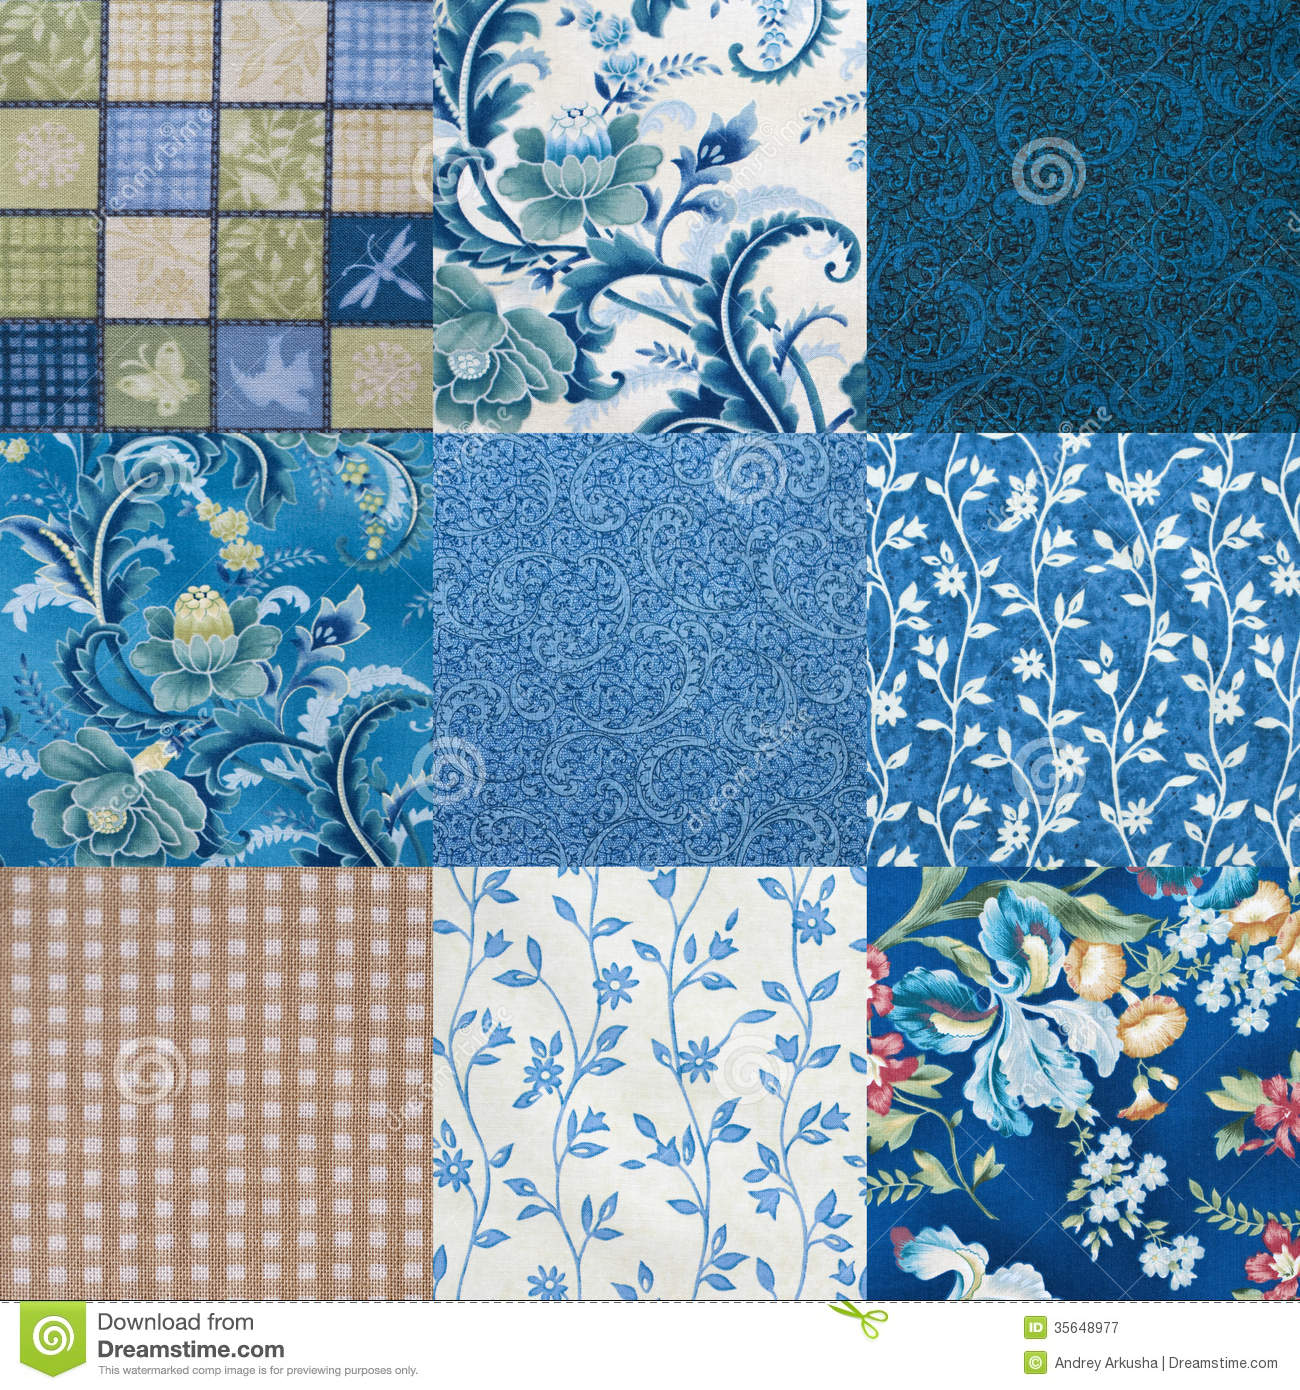 Crazy Quilt Pattern Fabric : Crazy Quilt Royalty Free Stock Photography - Image: 35648977